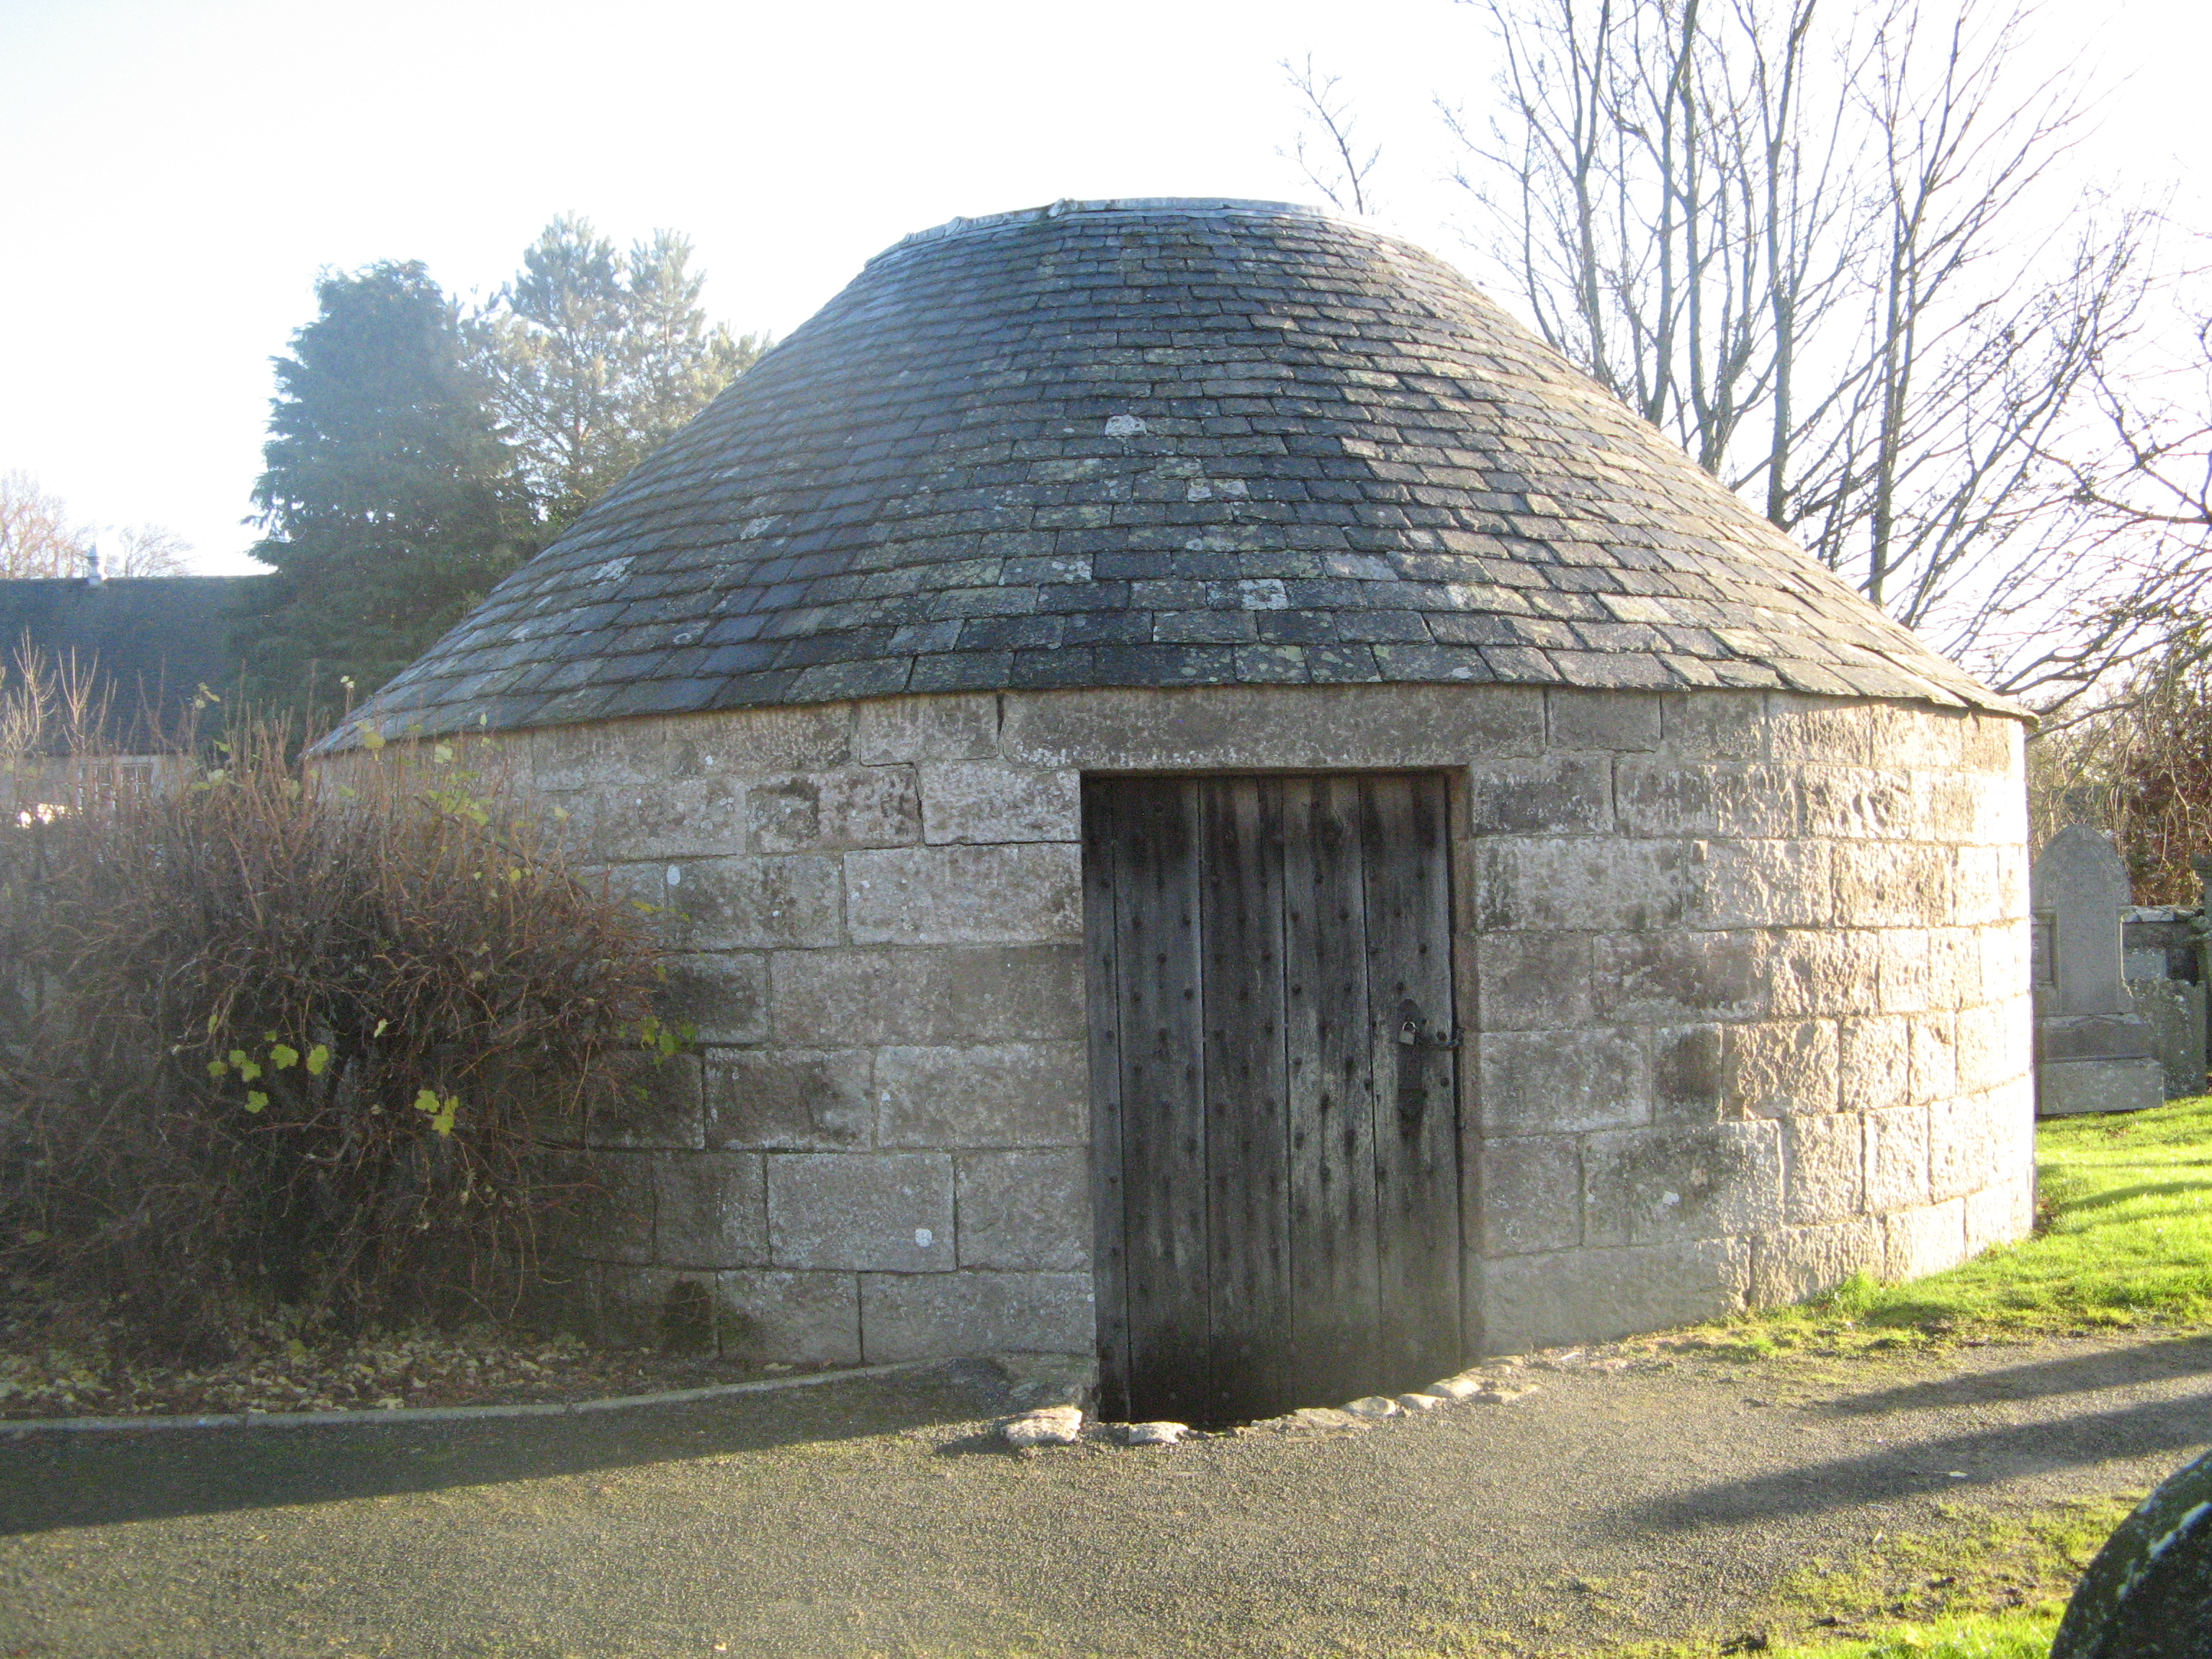 Small round building